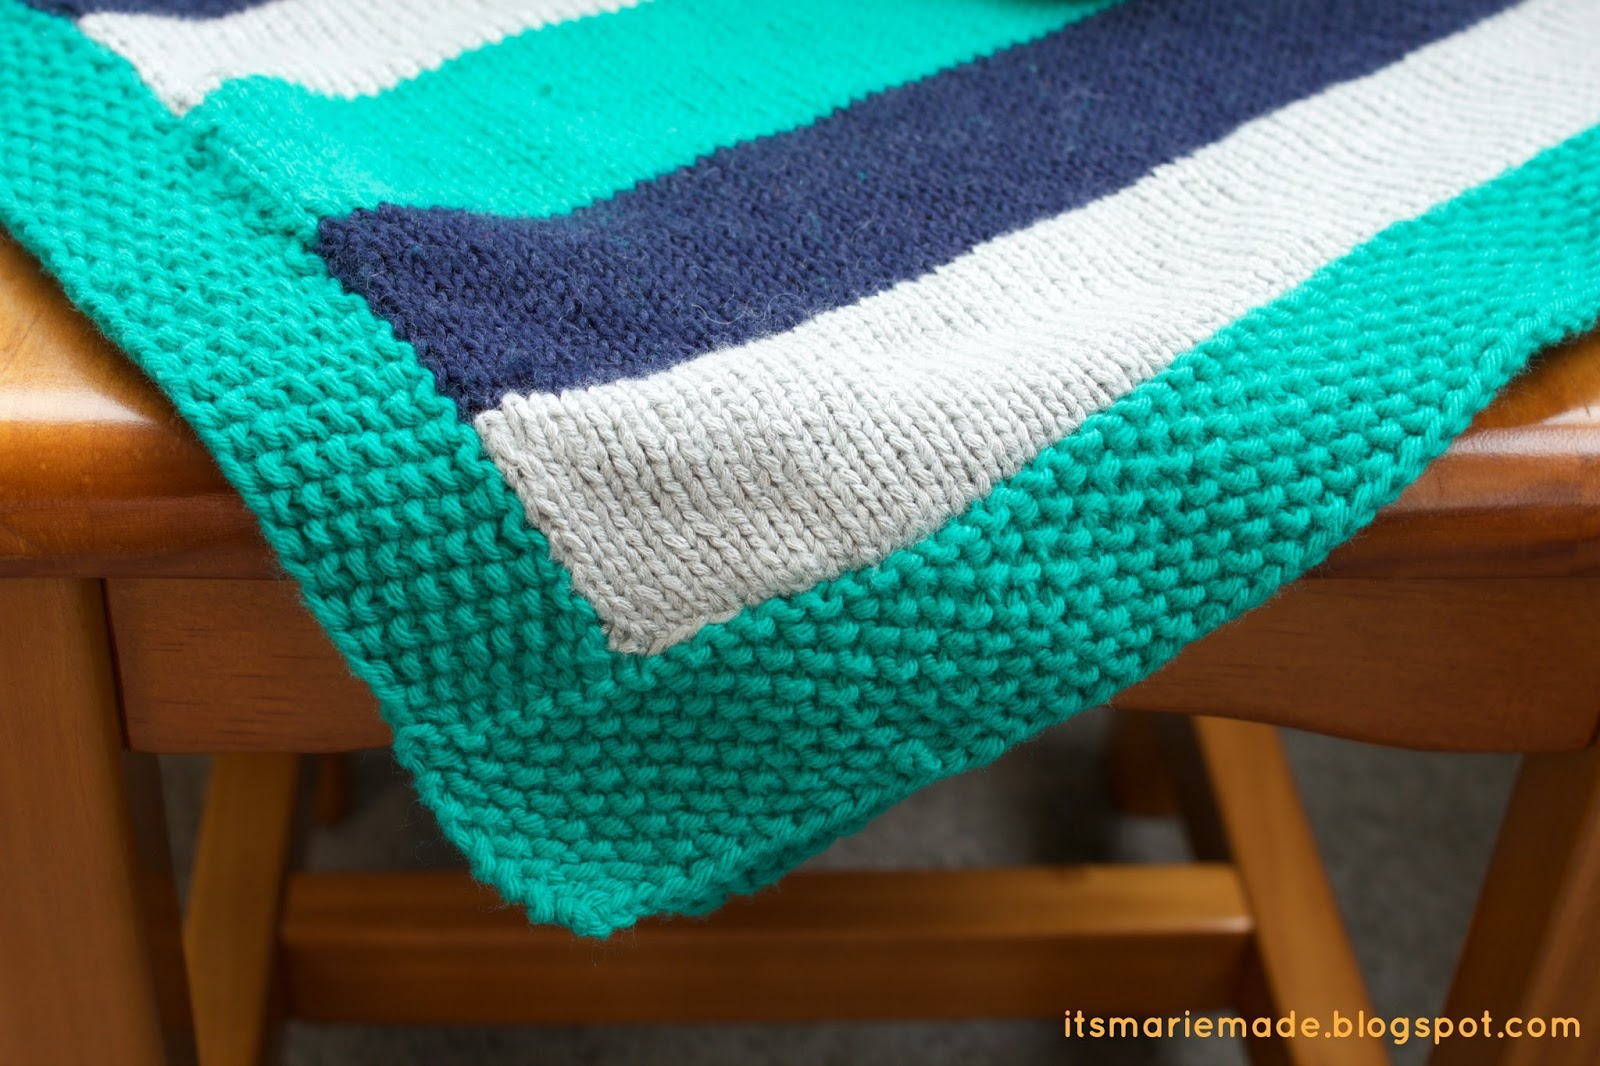 Knit Purl Stitch Alternating : Its Marie Made!: Finished Projects: Easy Striped Baby Blanket